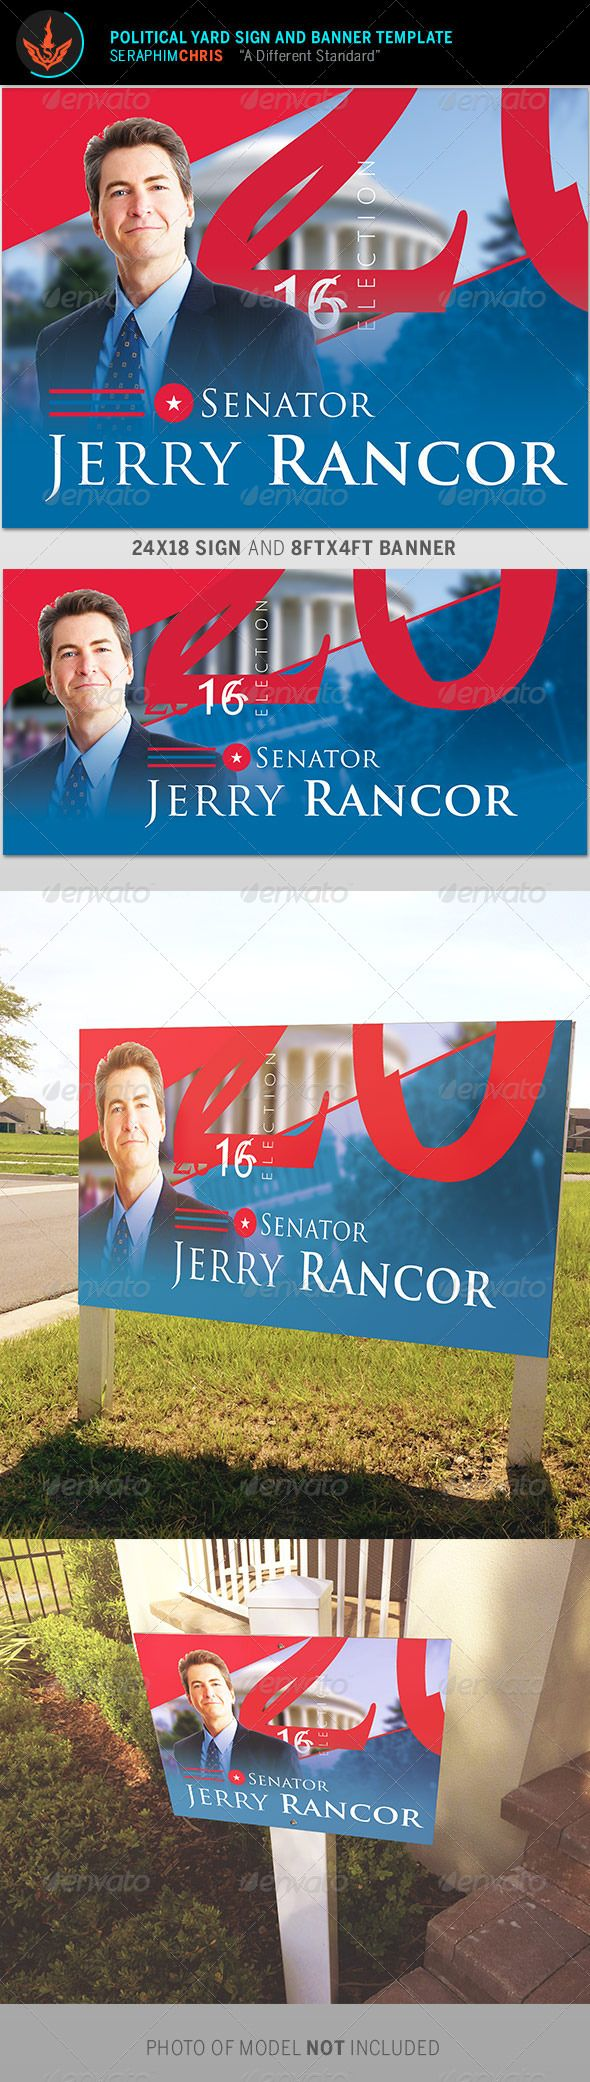 With this Political Yard Sign and Banner Template you'll have the highest quality presentation. This file customized for ease of use and is exclusive to graphicriver.net